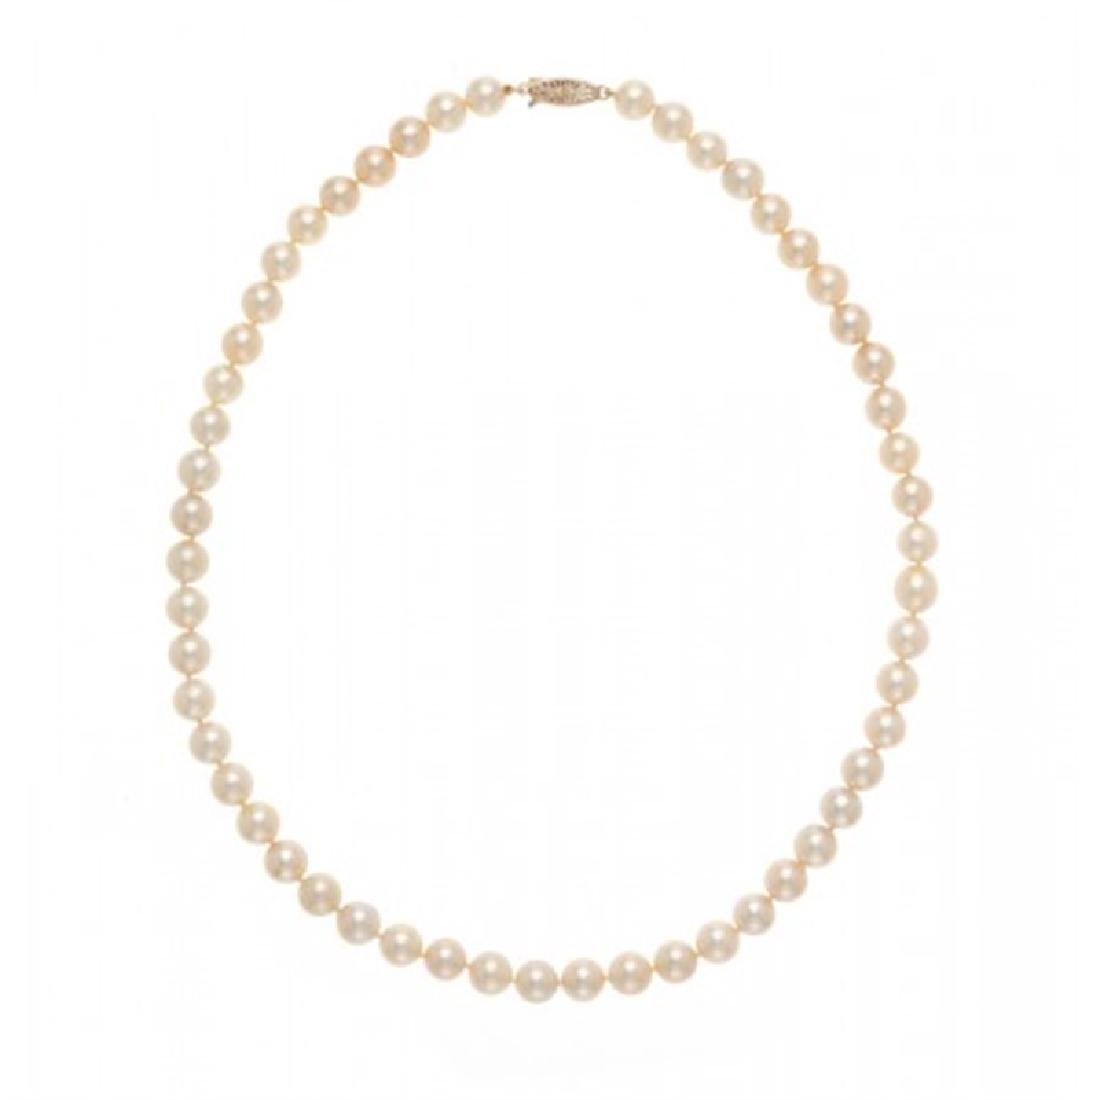 7.5-8.0mm Japanese Akoya Pearl Necklace